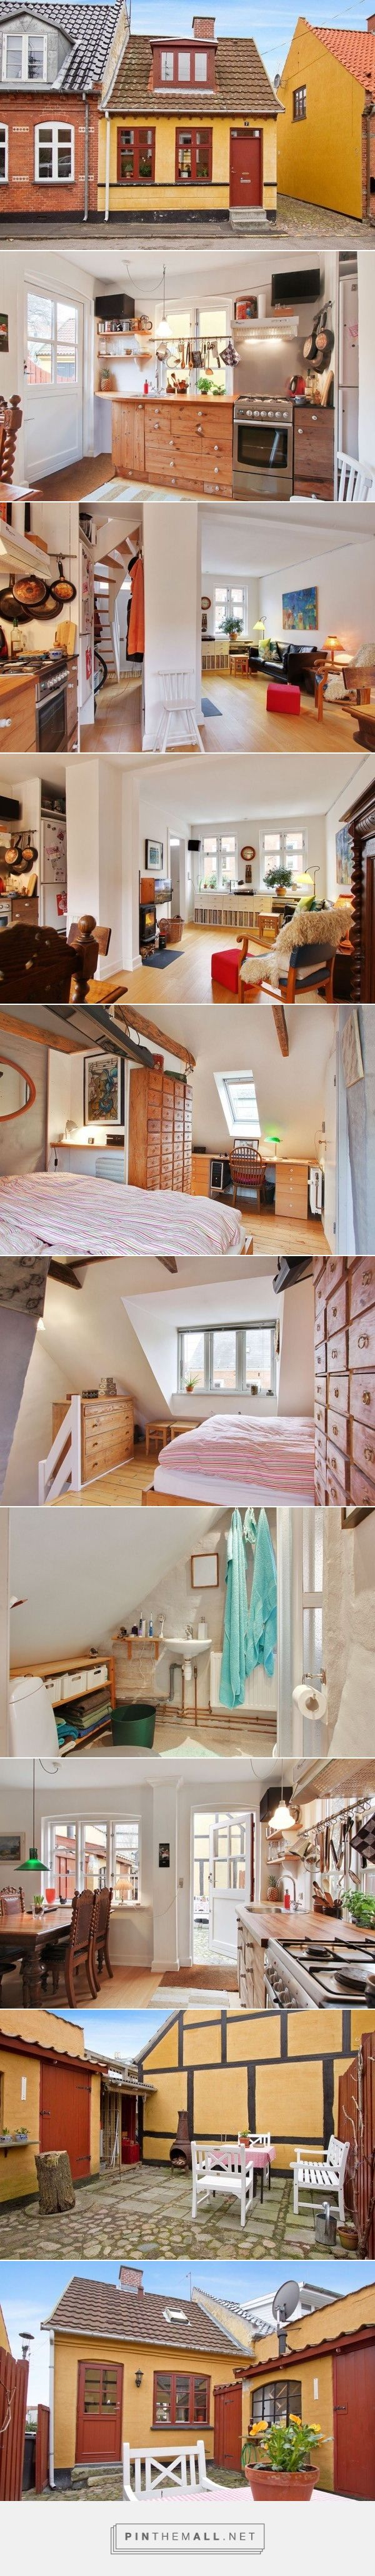 527 Sq. Ft. Townhouse in Denmark... - a grouped images picture - Pin Them All